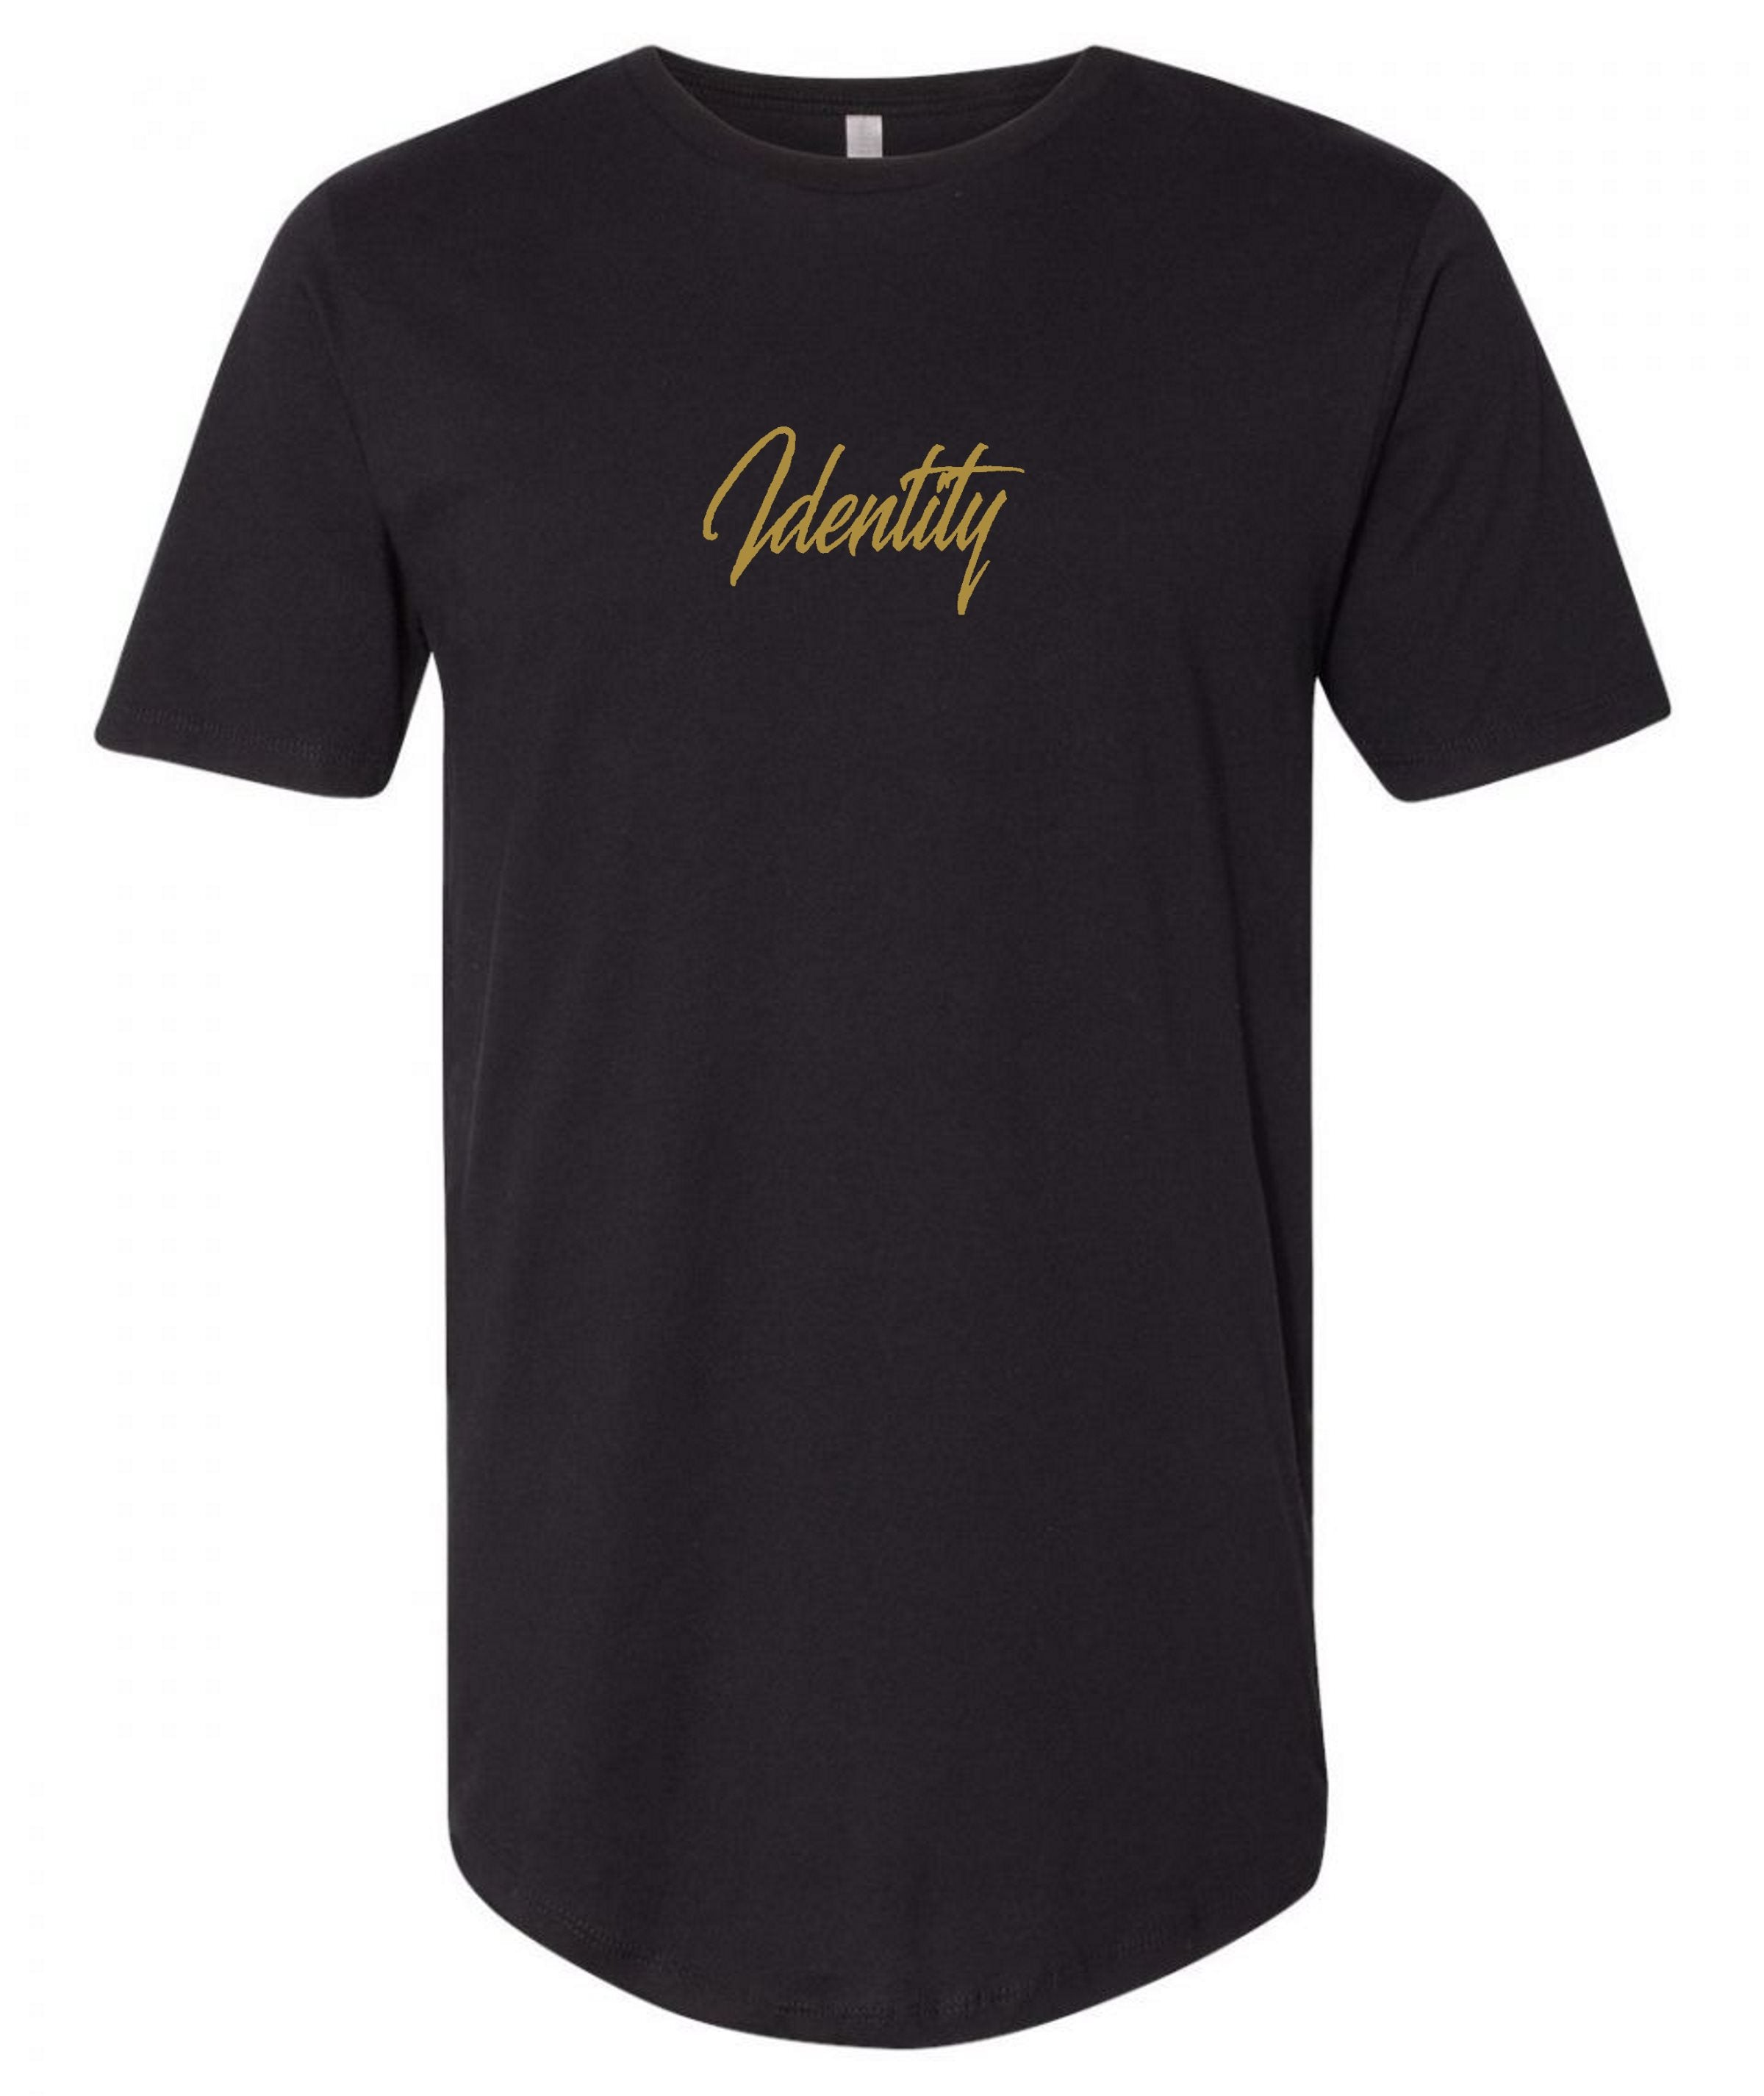 Womens Signature Oversized T-Shirt (2 Colour Options)